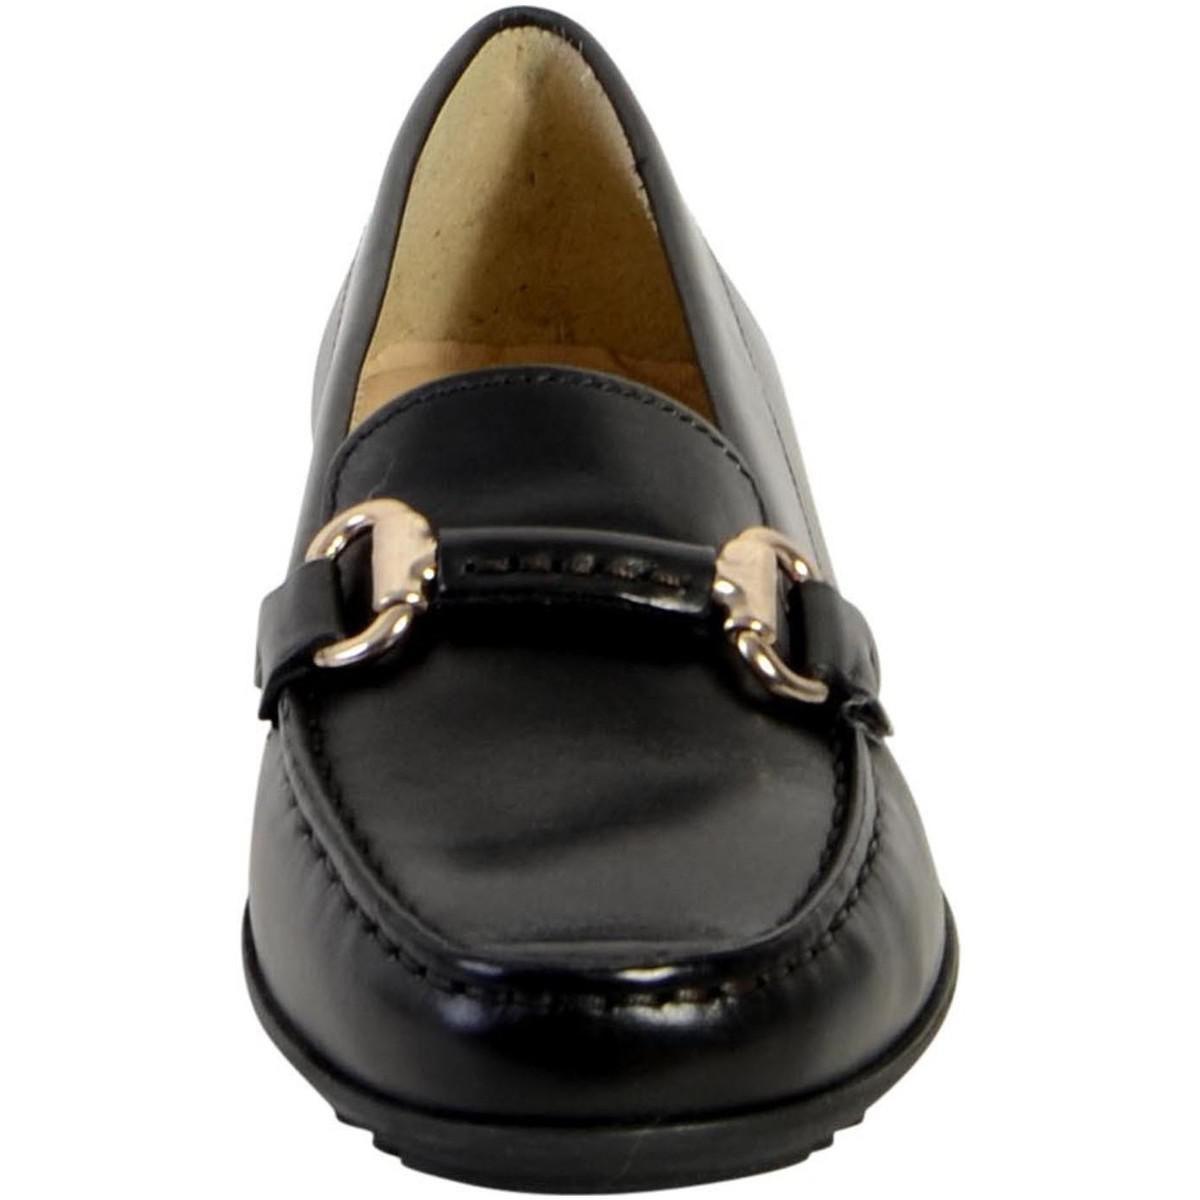 Geox Moccasin D Elidia B D642tb 00043 C9999 Black Womens Loafers Island Shoes Slip On Mocasine Casual Gallery